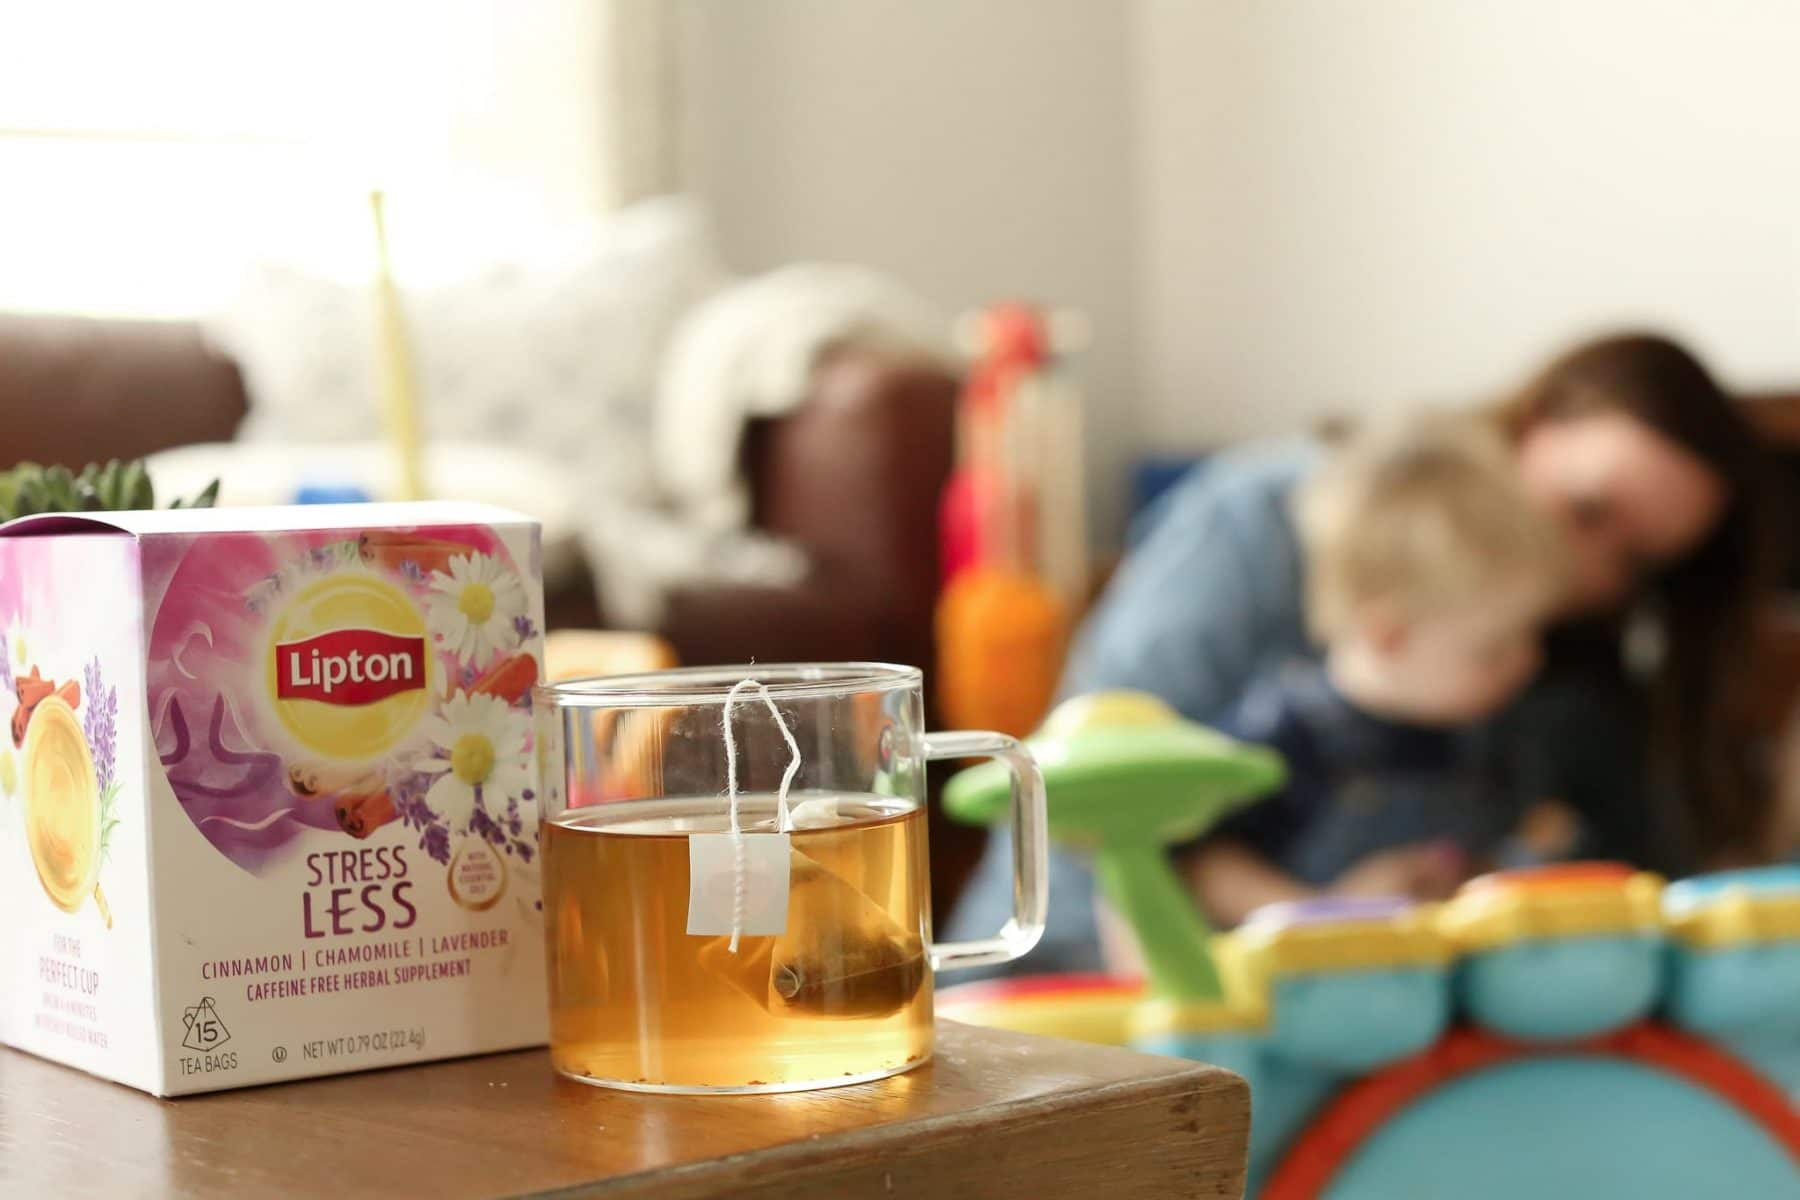 shot of lipton stress less tea